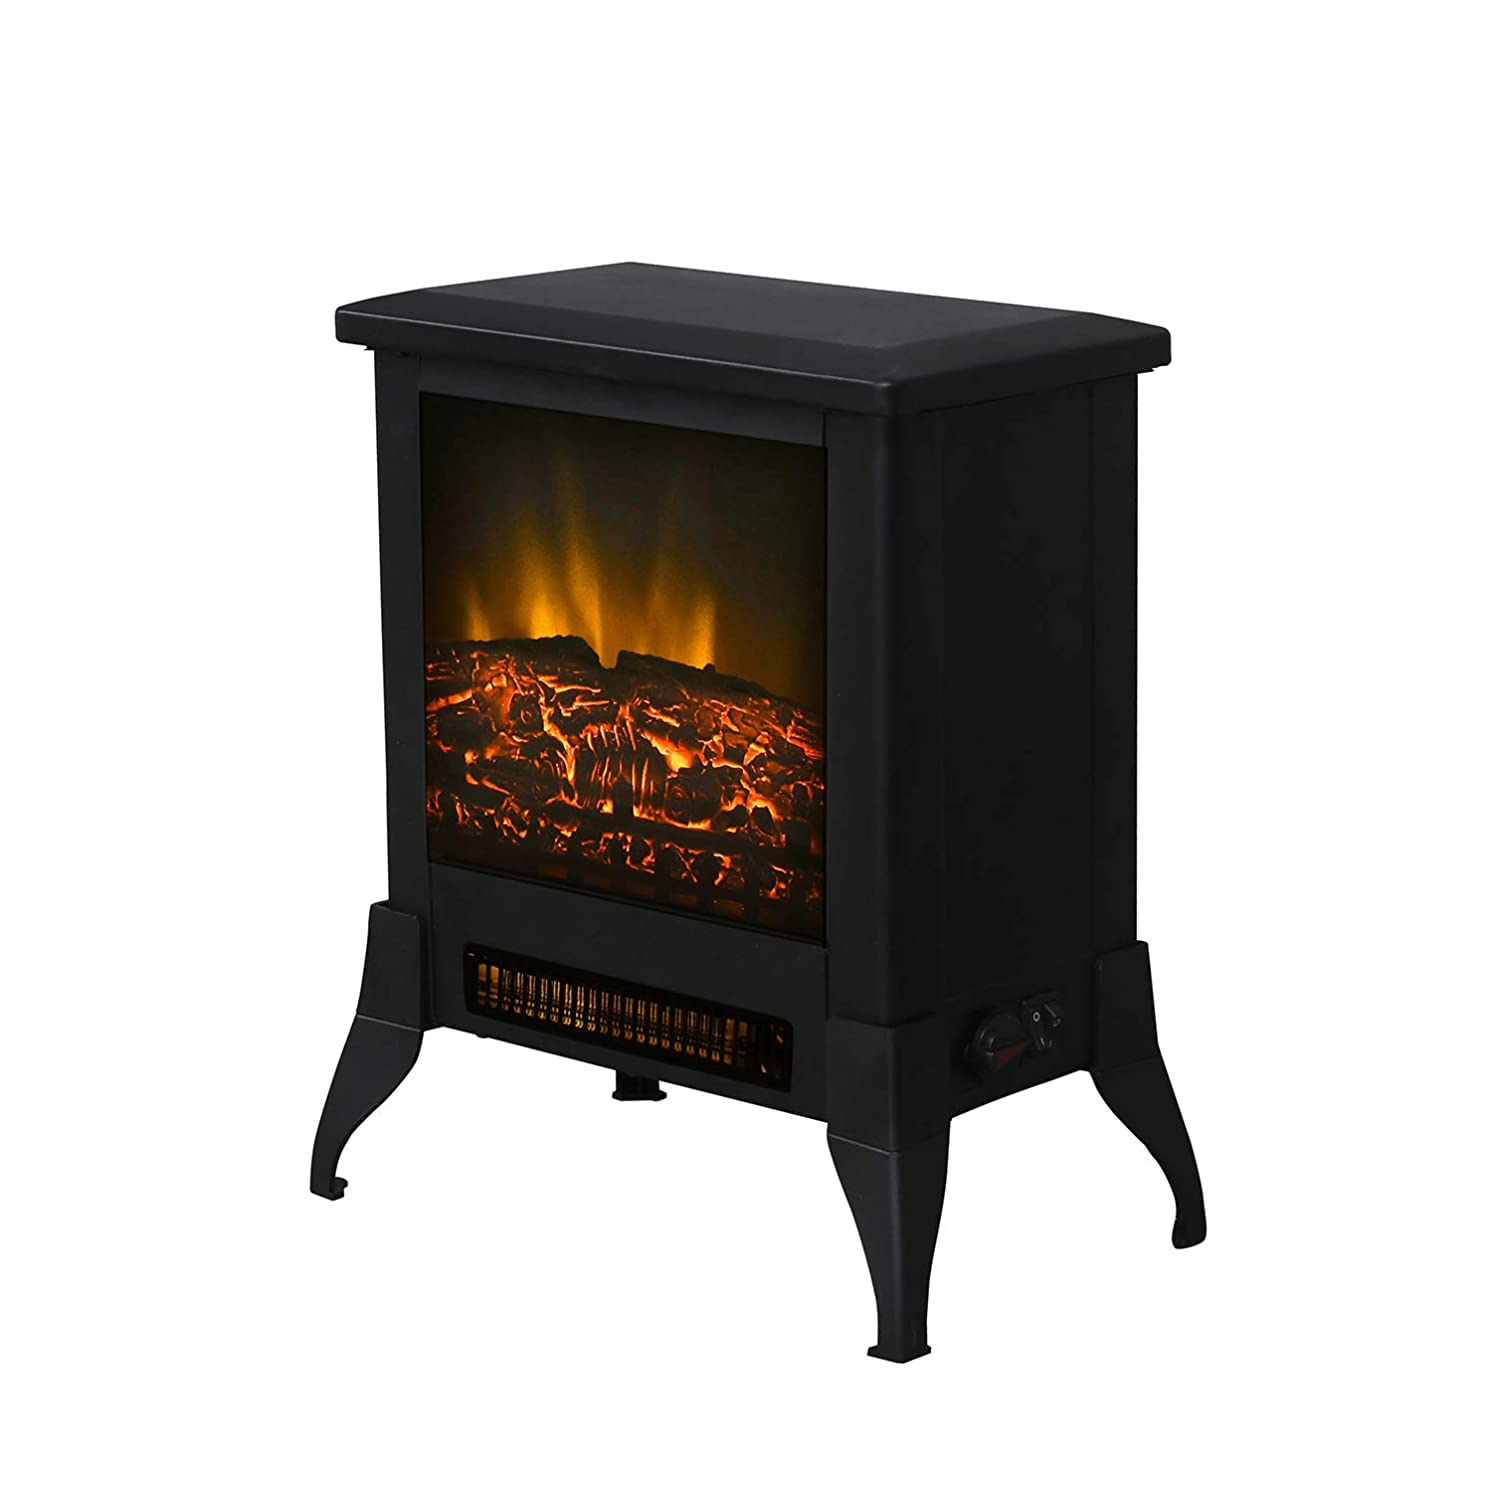 VACA KEY 14 1400W Free Standing Electric Fireplace Flame Stove Portable Space Heater FireBox hermostat Control Office Home Residential Apartment Use Steel Better Wood Overheat Protect, 14 inch